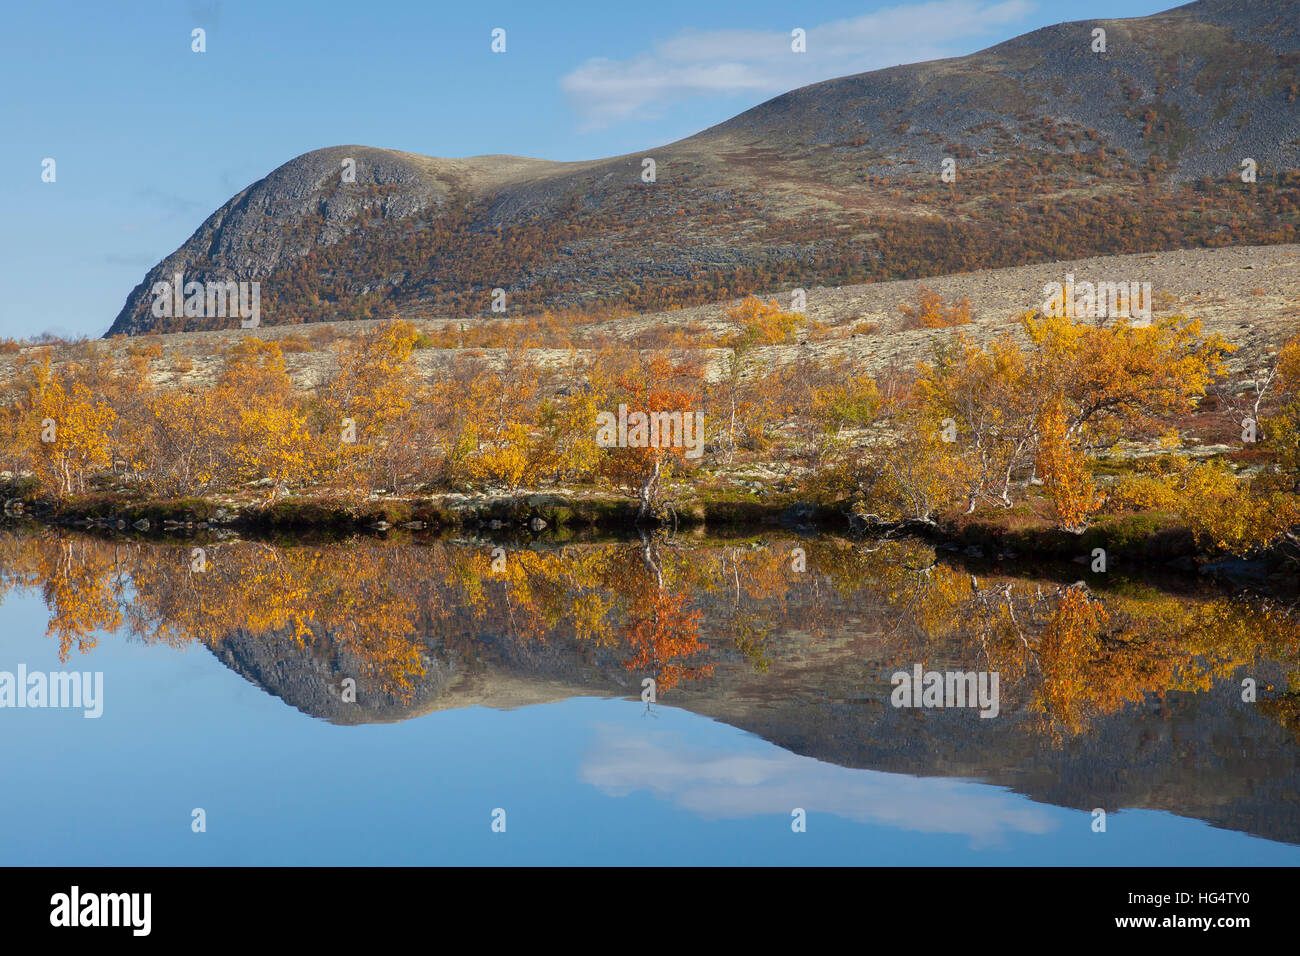 Birch trees showing autumn colours reflected in water of lake, Døråldalen in Rondane National Park, Oppland, - Stock Image